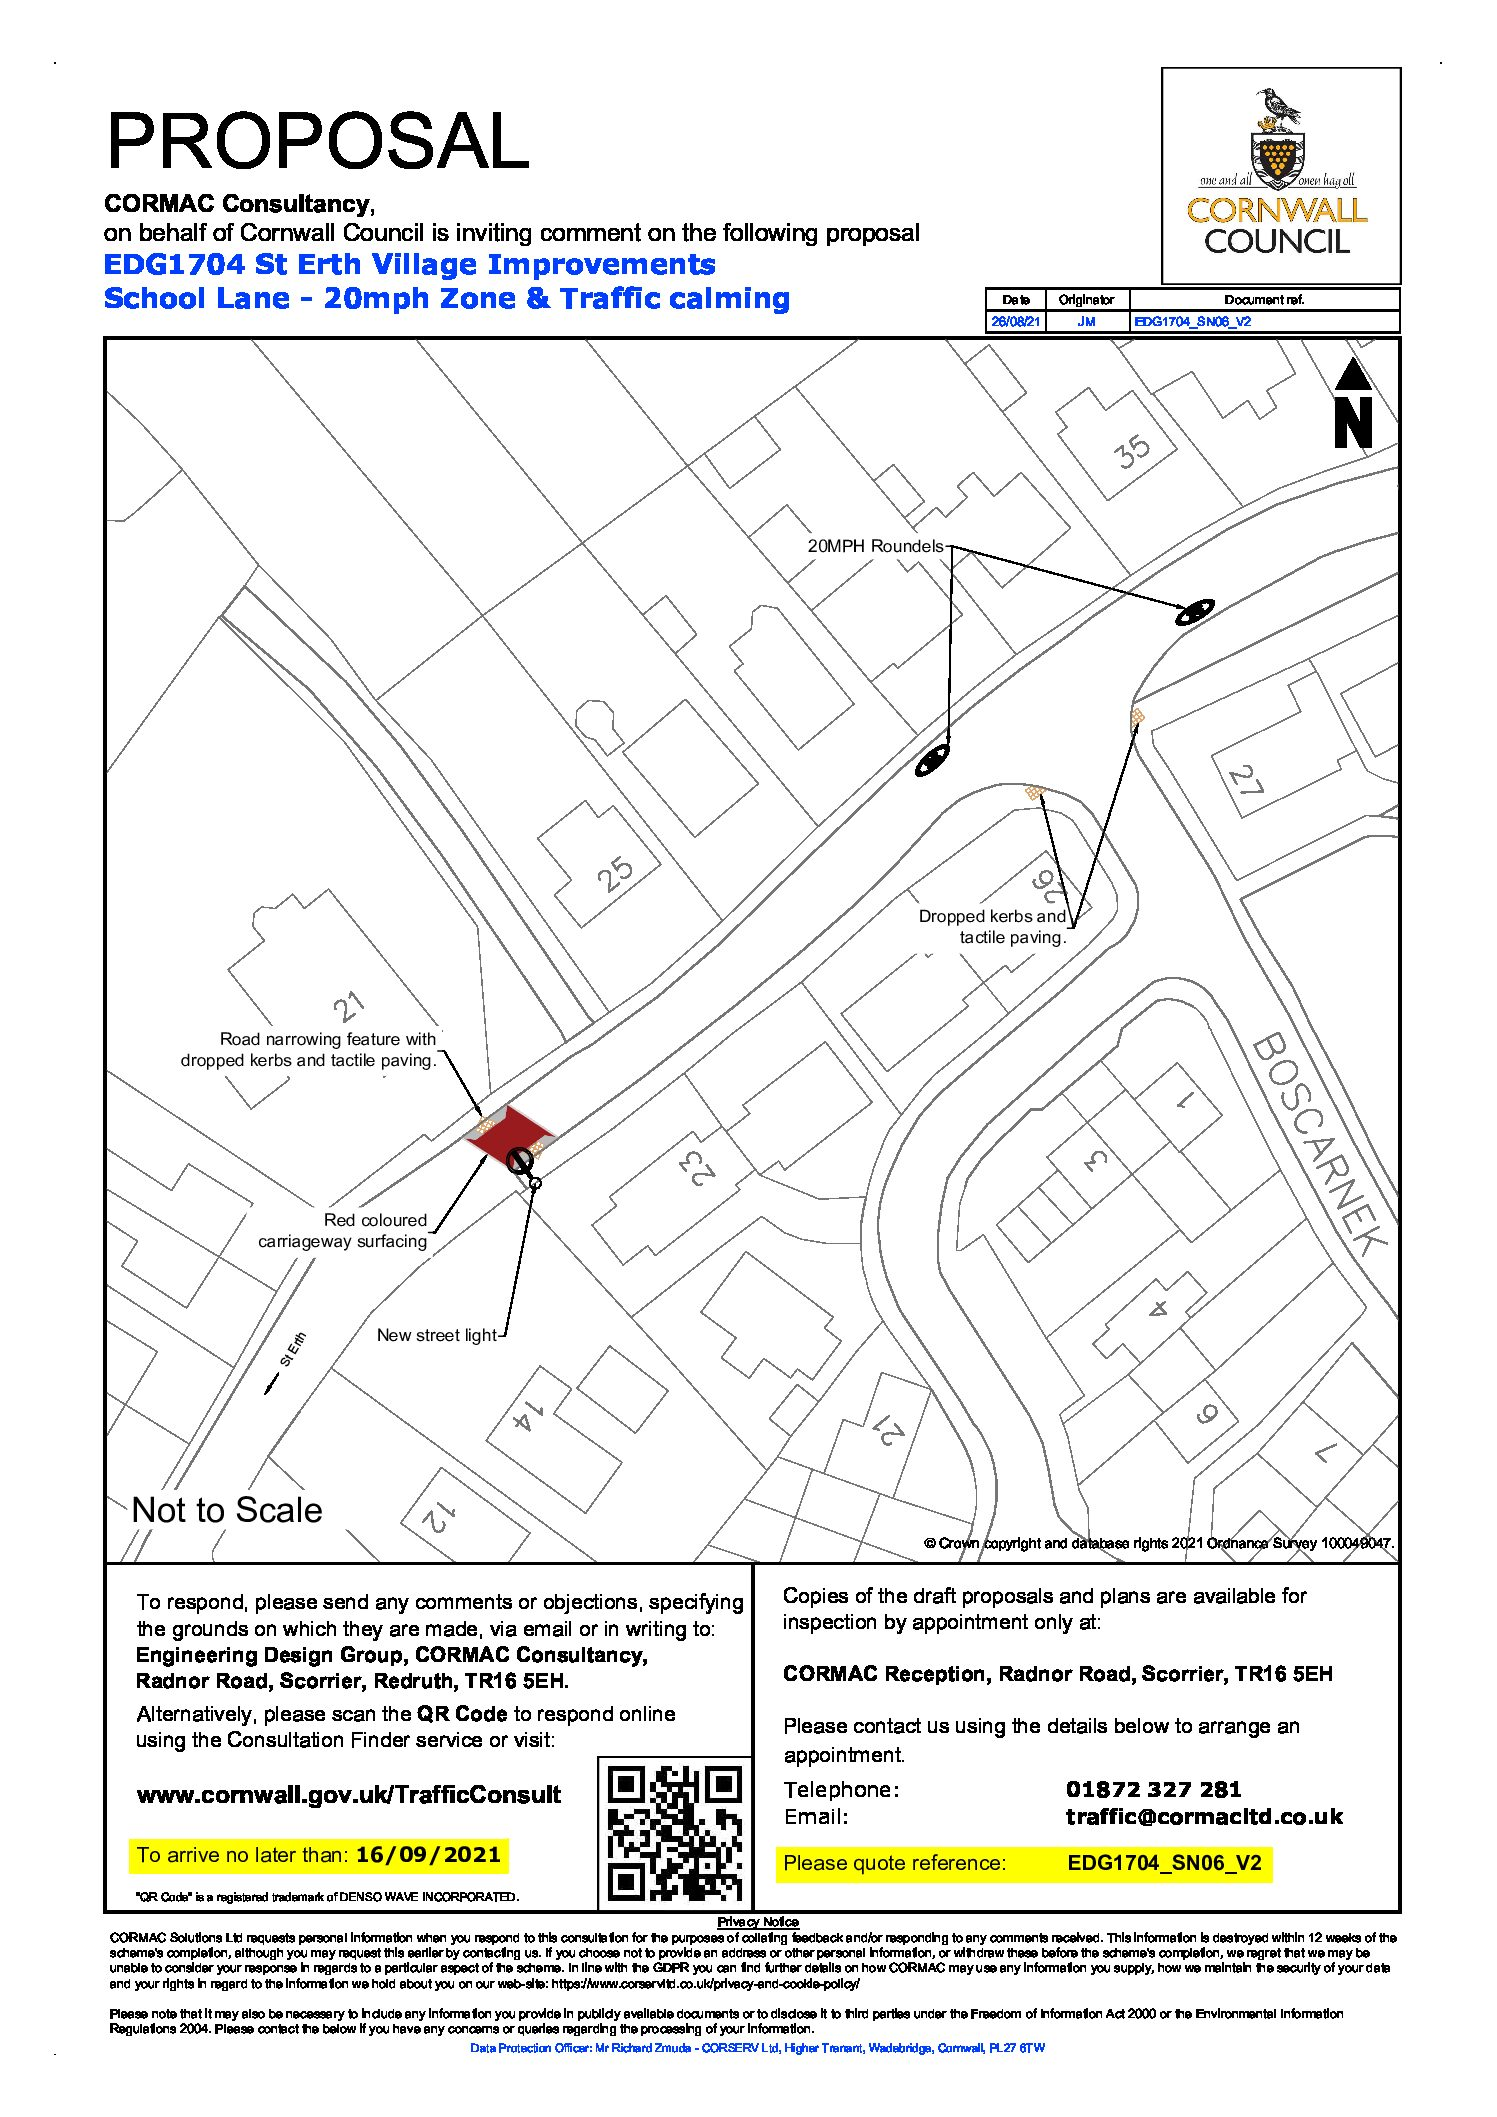 Revised proposals for School Lane consultation